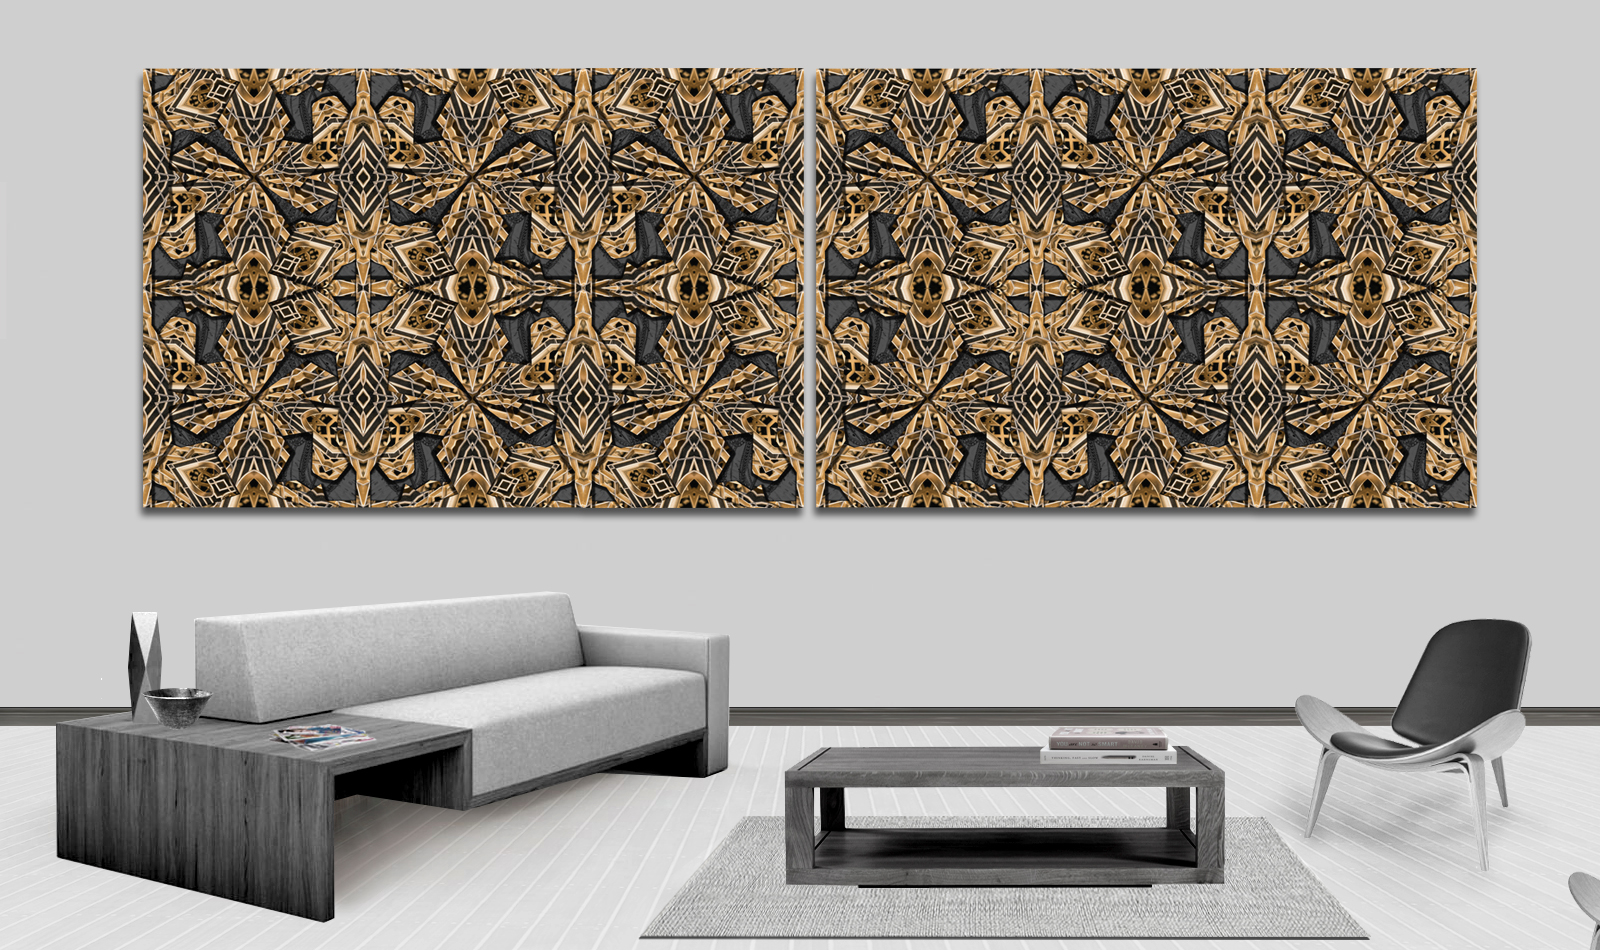 Metal Opulence shown here in two side by side wall panels.